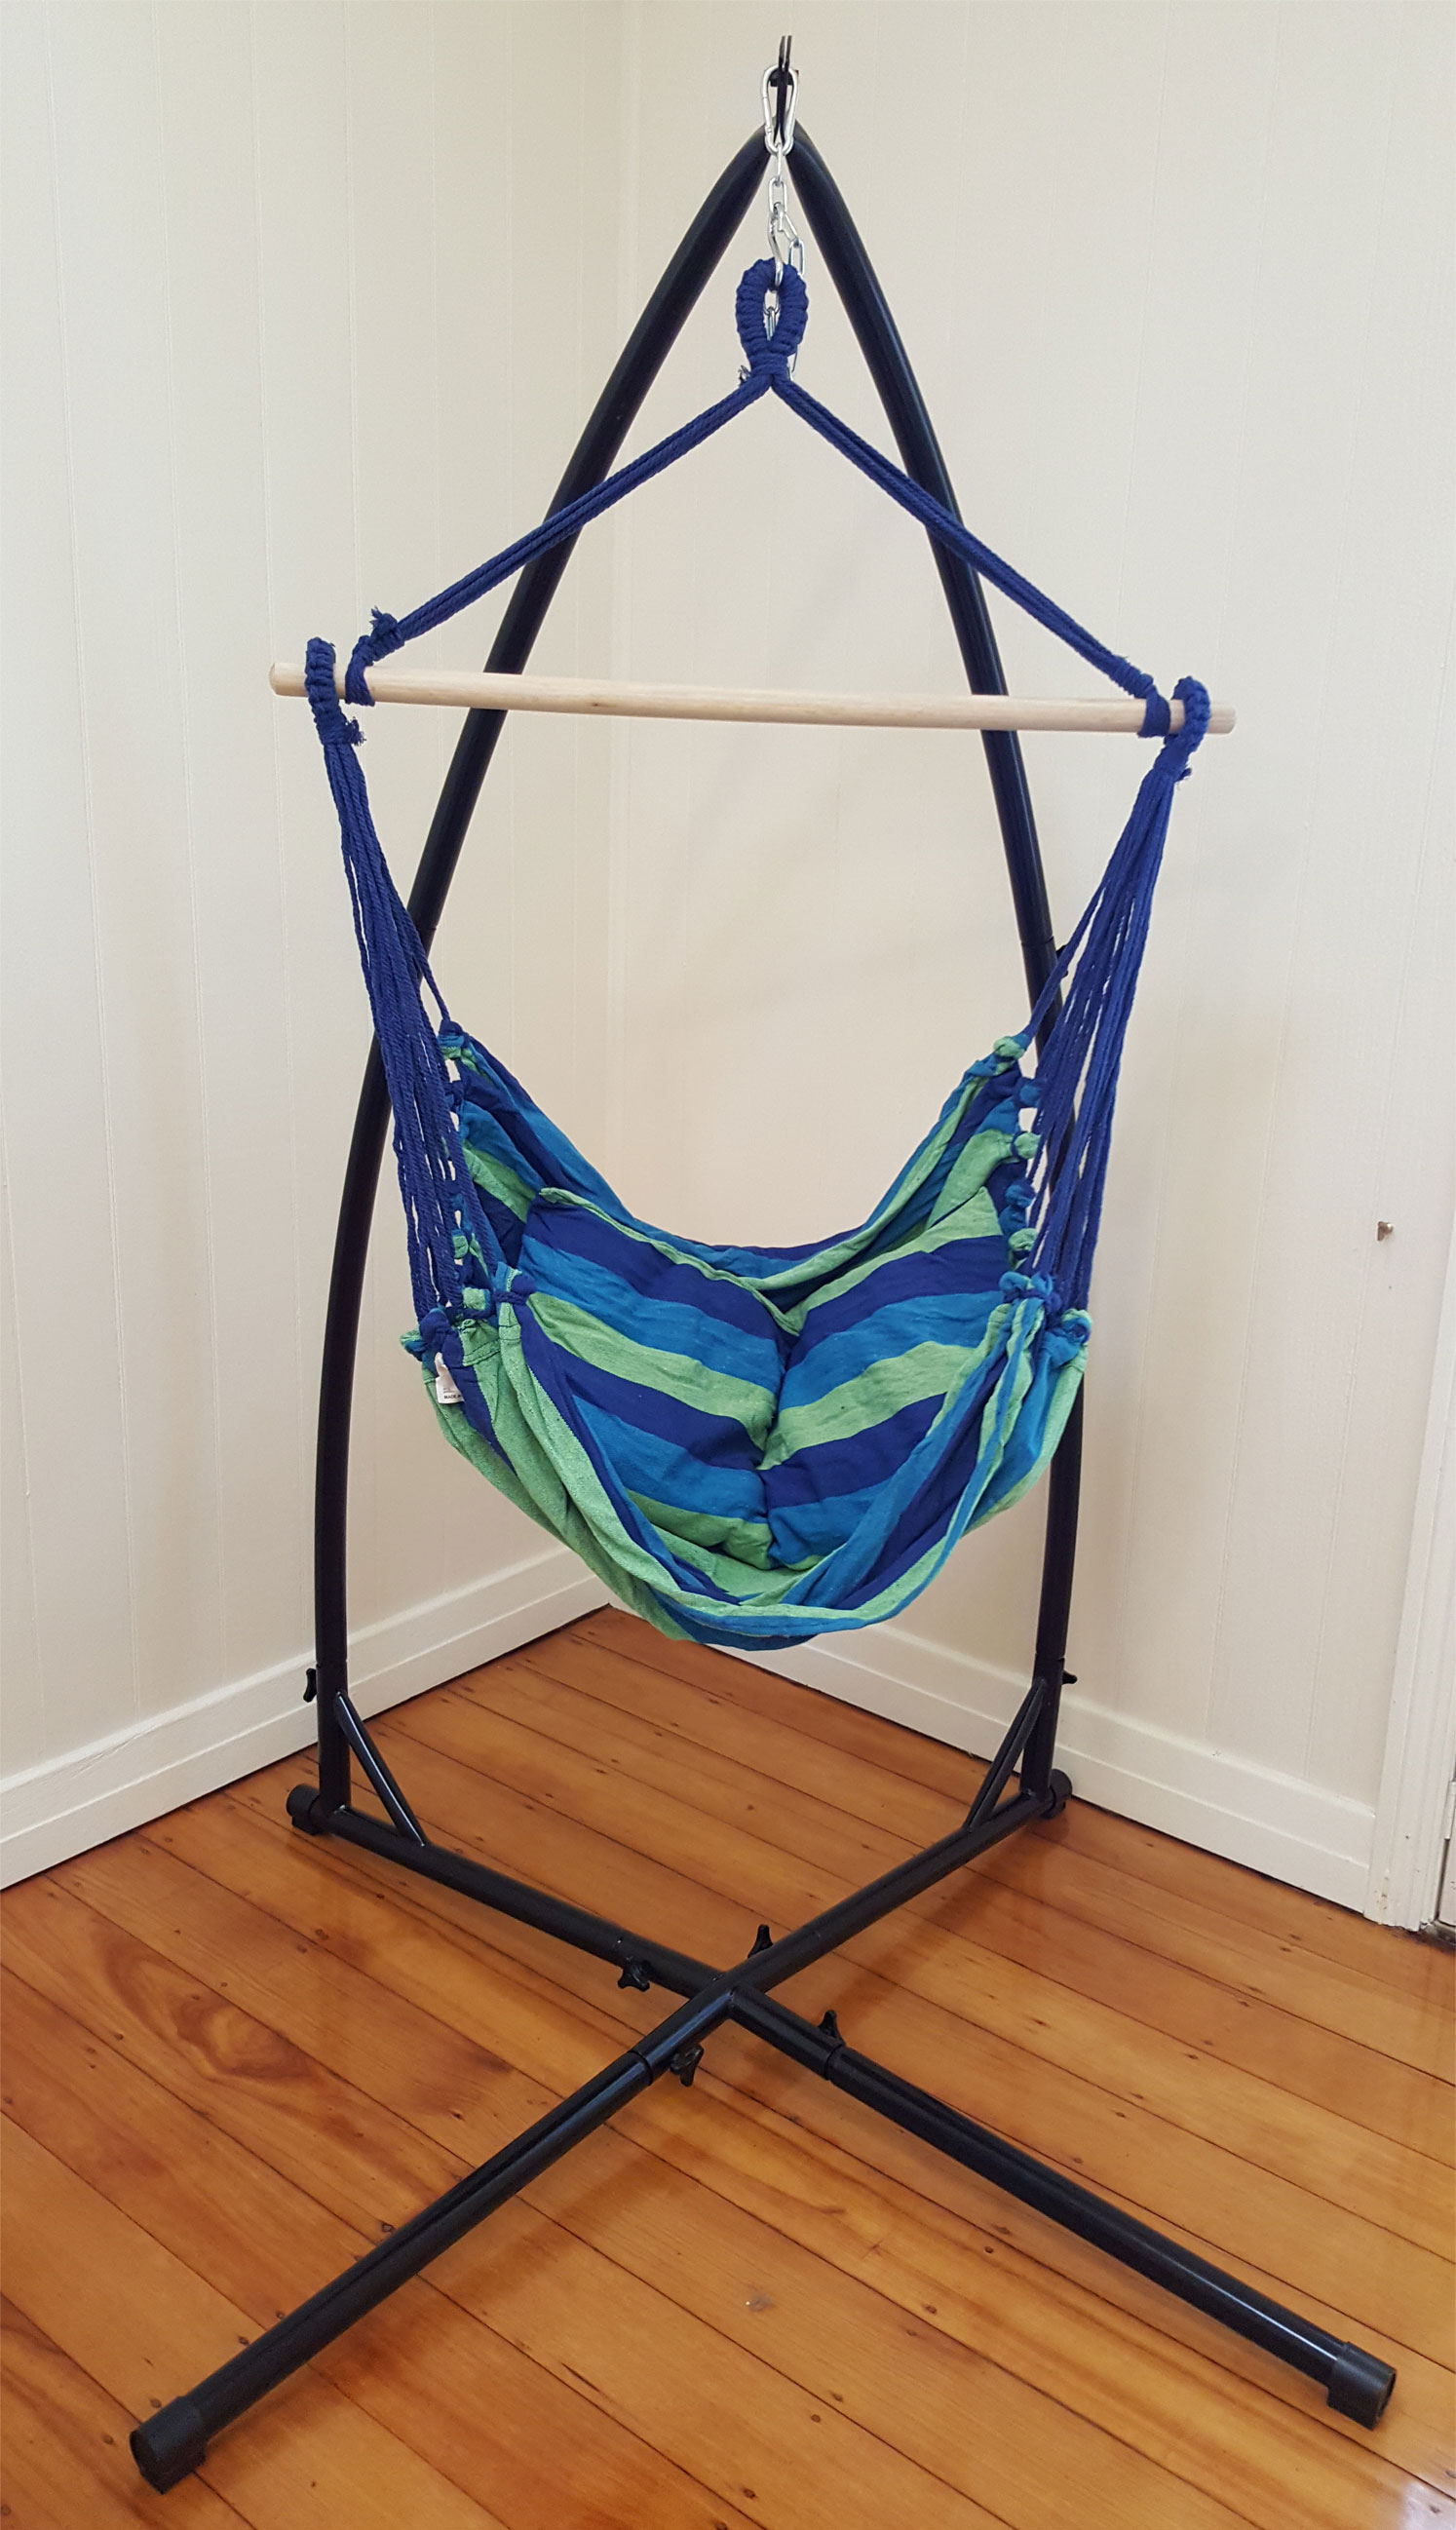 Hammock Chair Stands Blue Padded Hammock Chair With Pillows With Stand